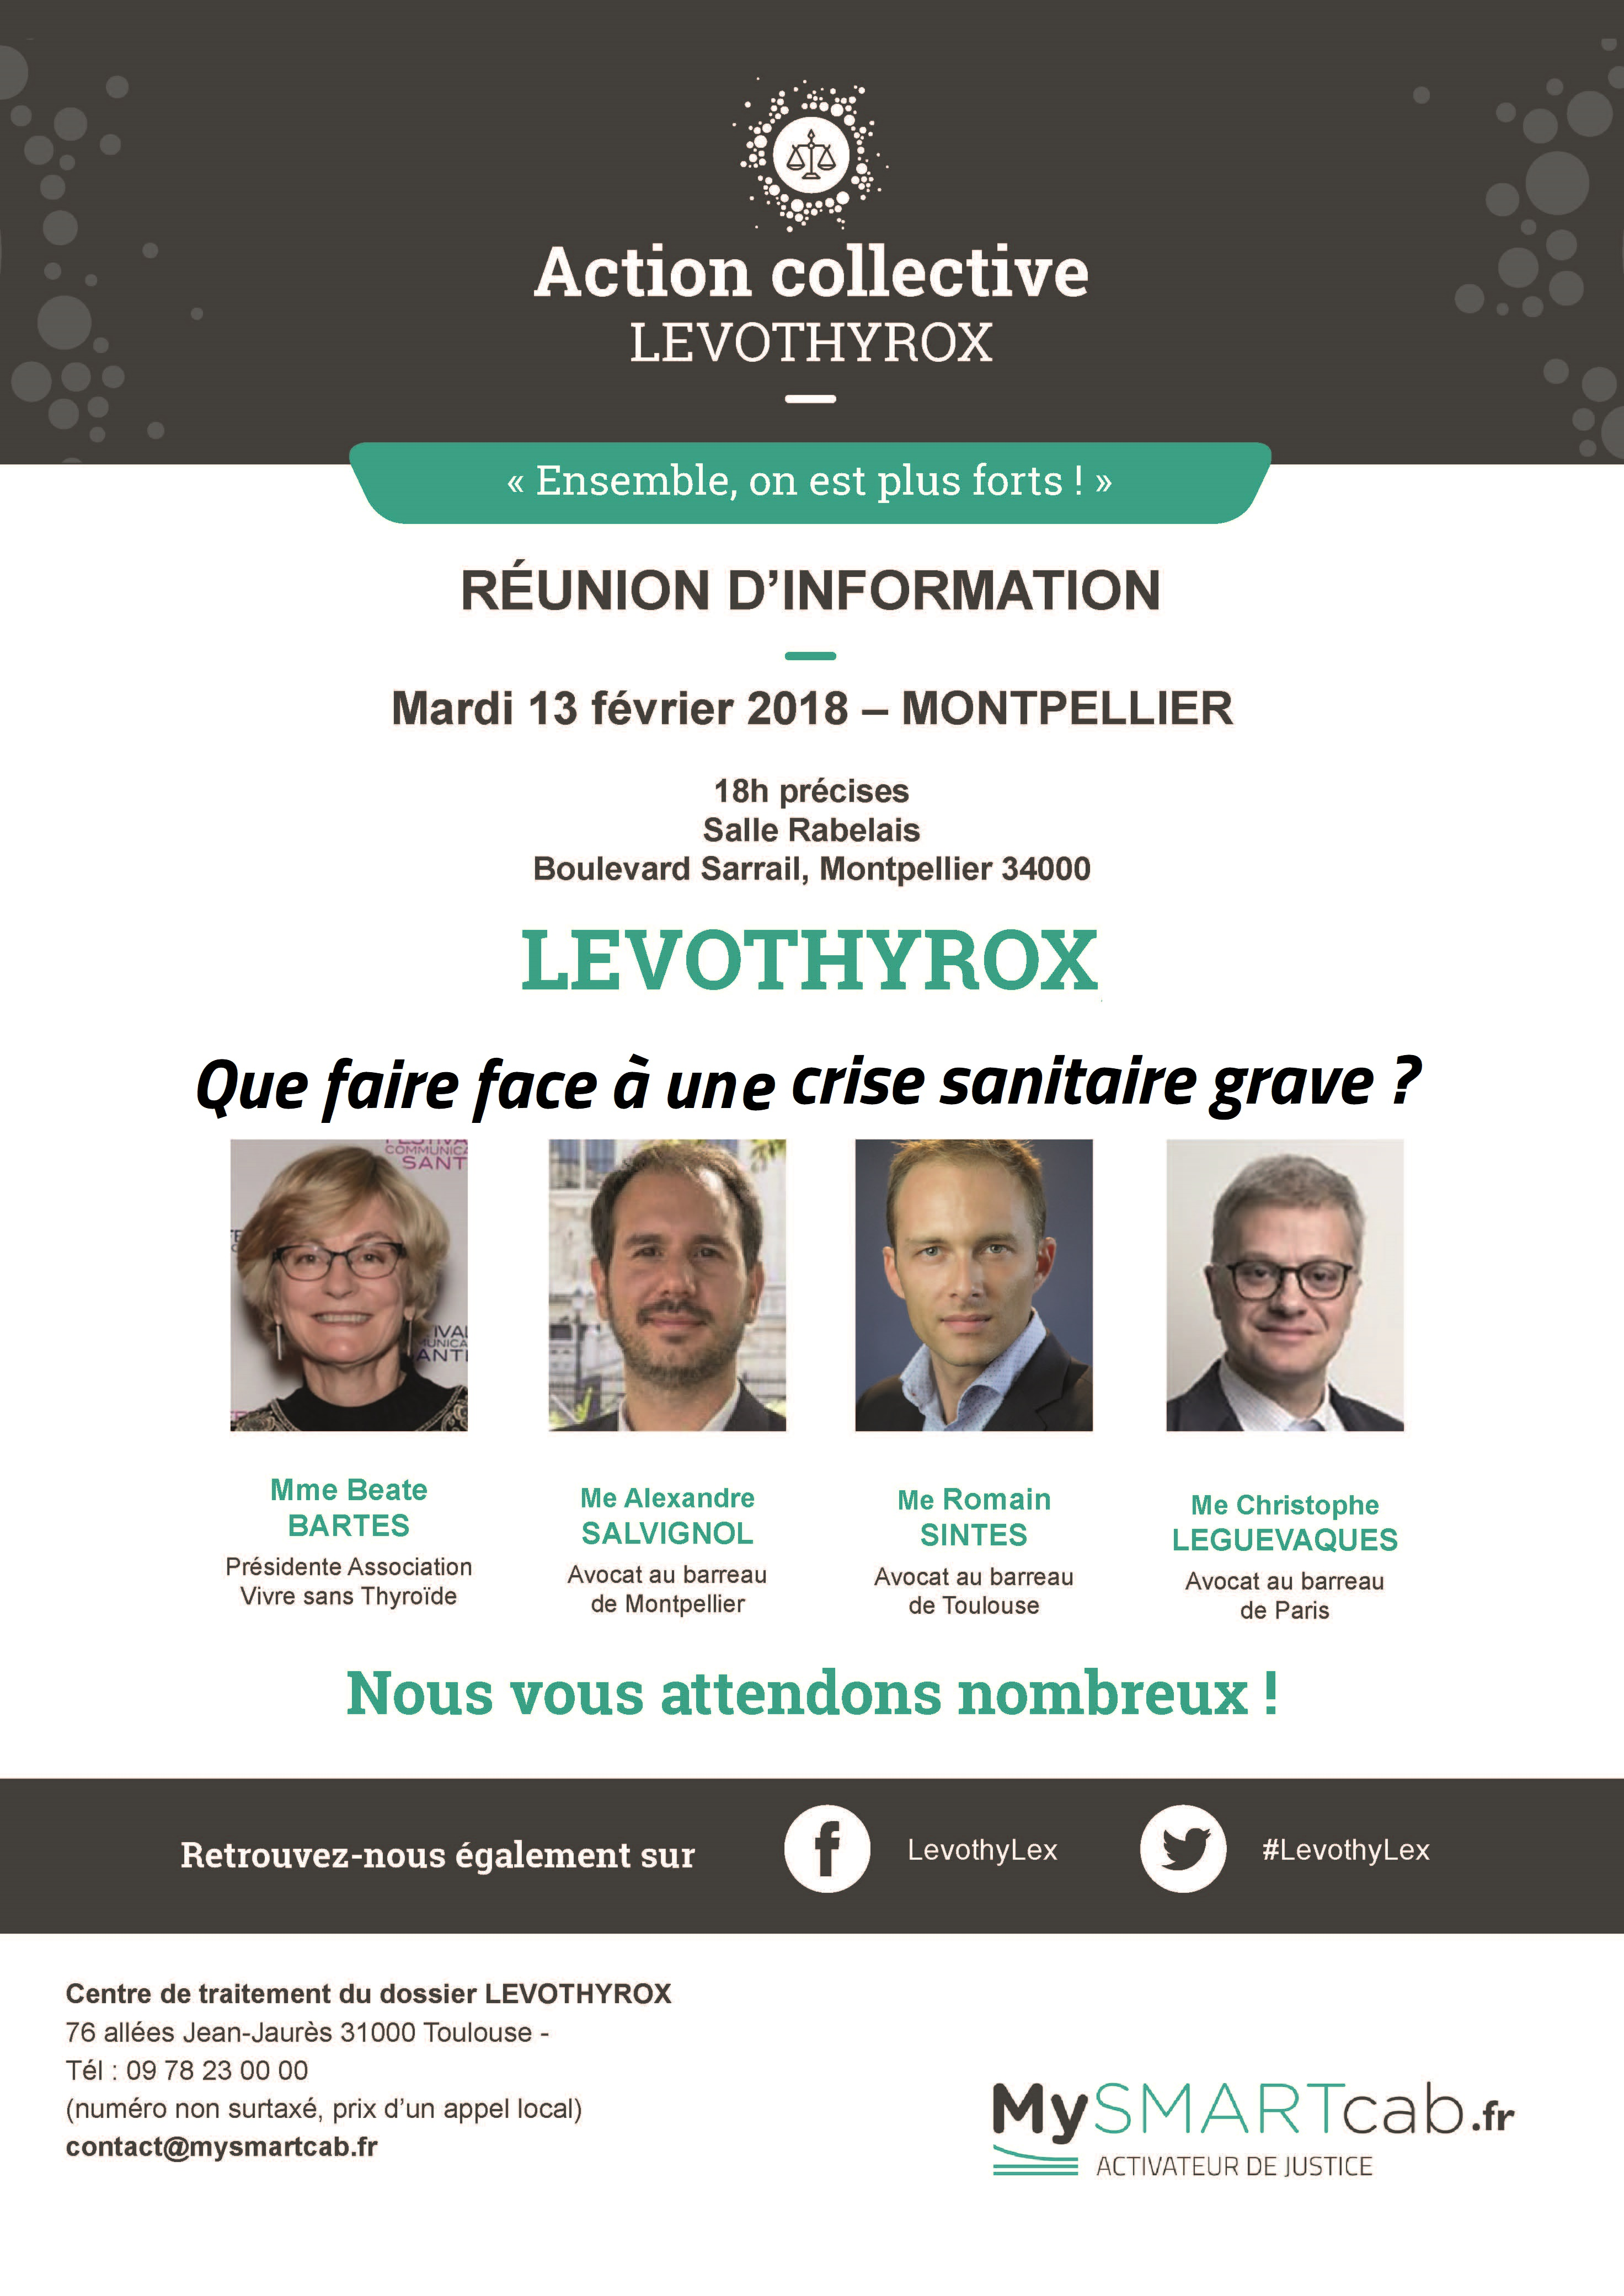 #Levothyrox : Retransmission de la réunion de #Montpellier